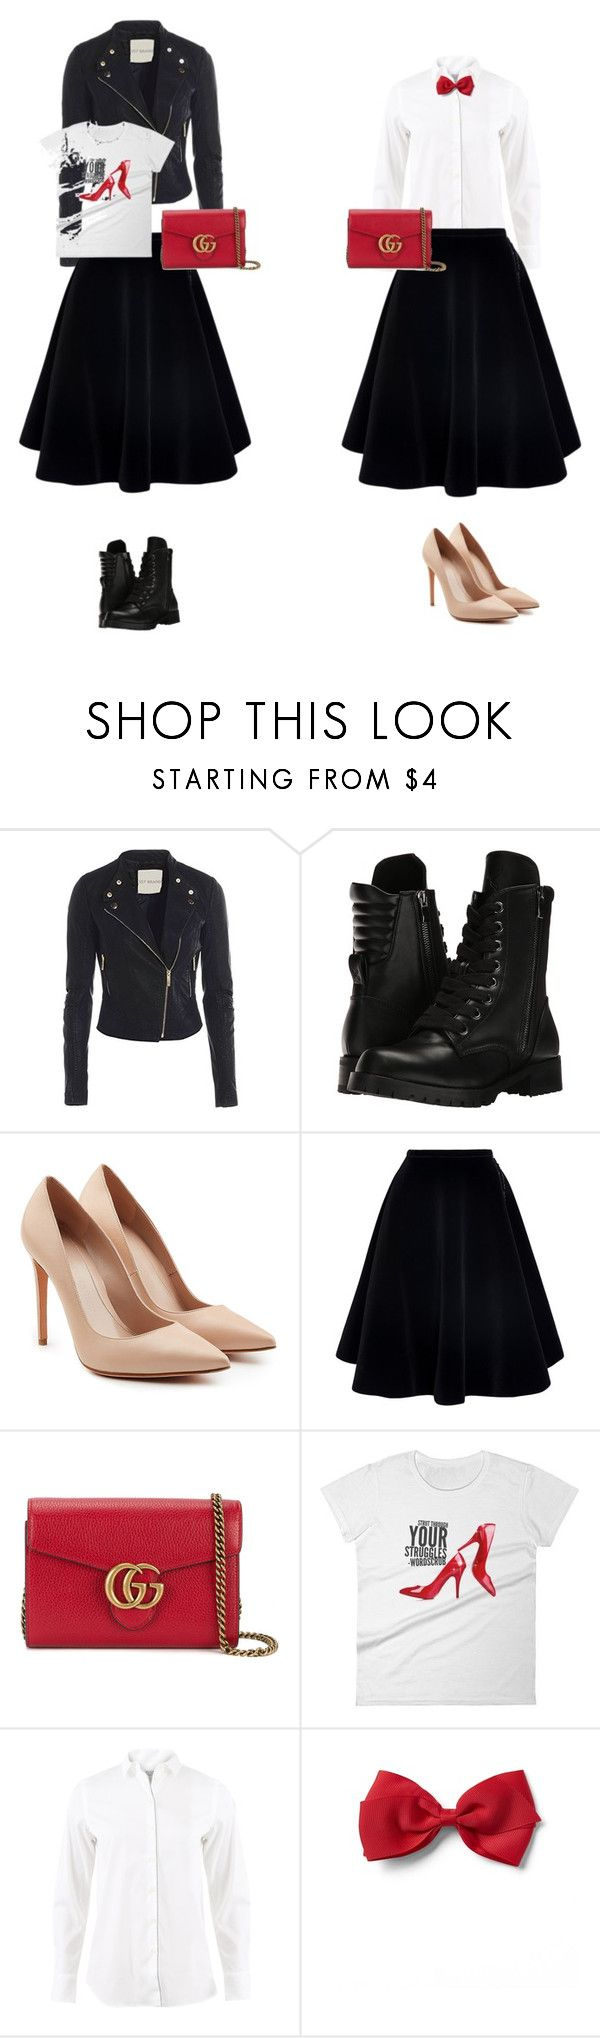 """Без названия #6"" by natazain on Polyvore featuring мода, Capezio, Alexander McQueen, N°21, Gucci и Brunello Cucinelli"